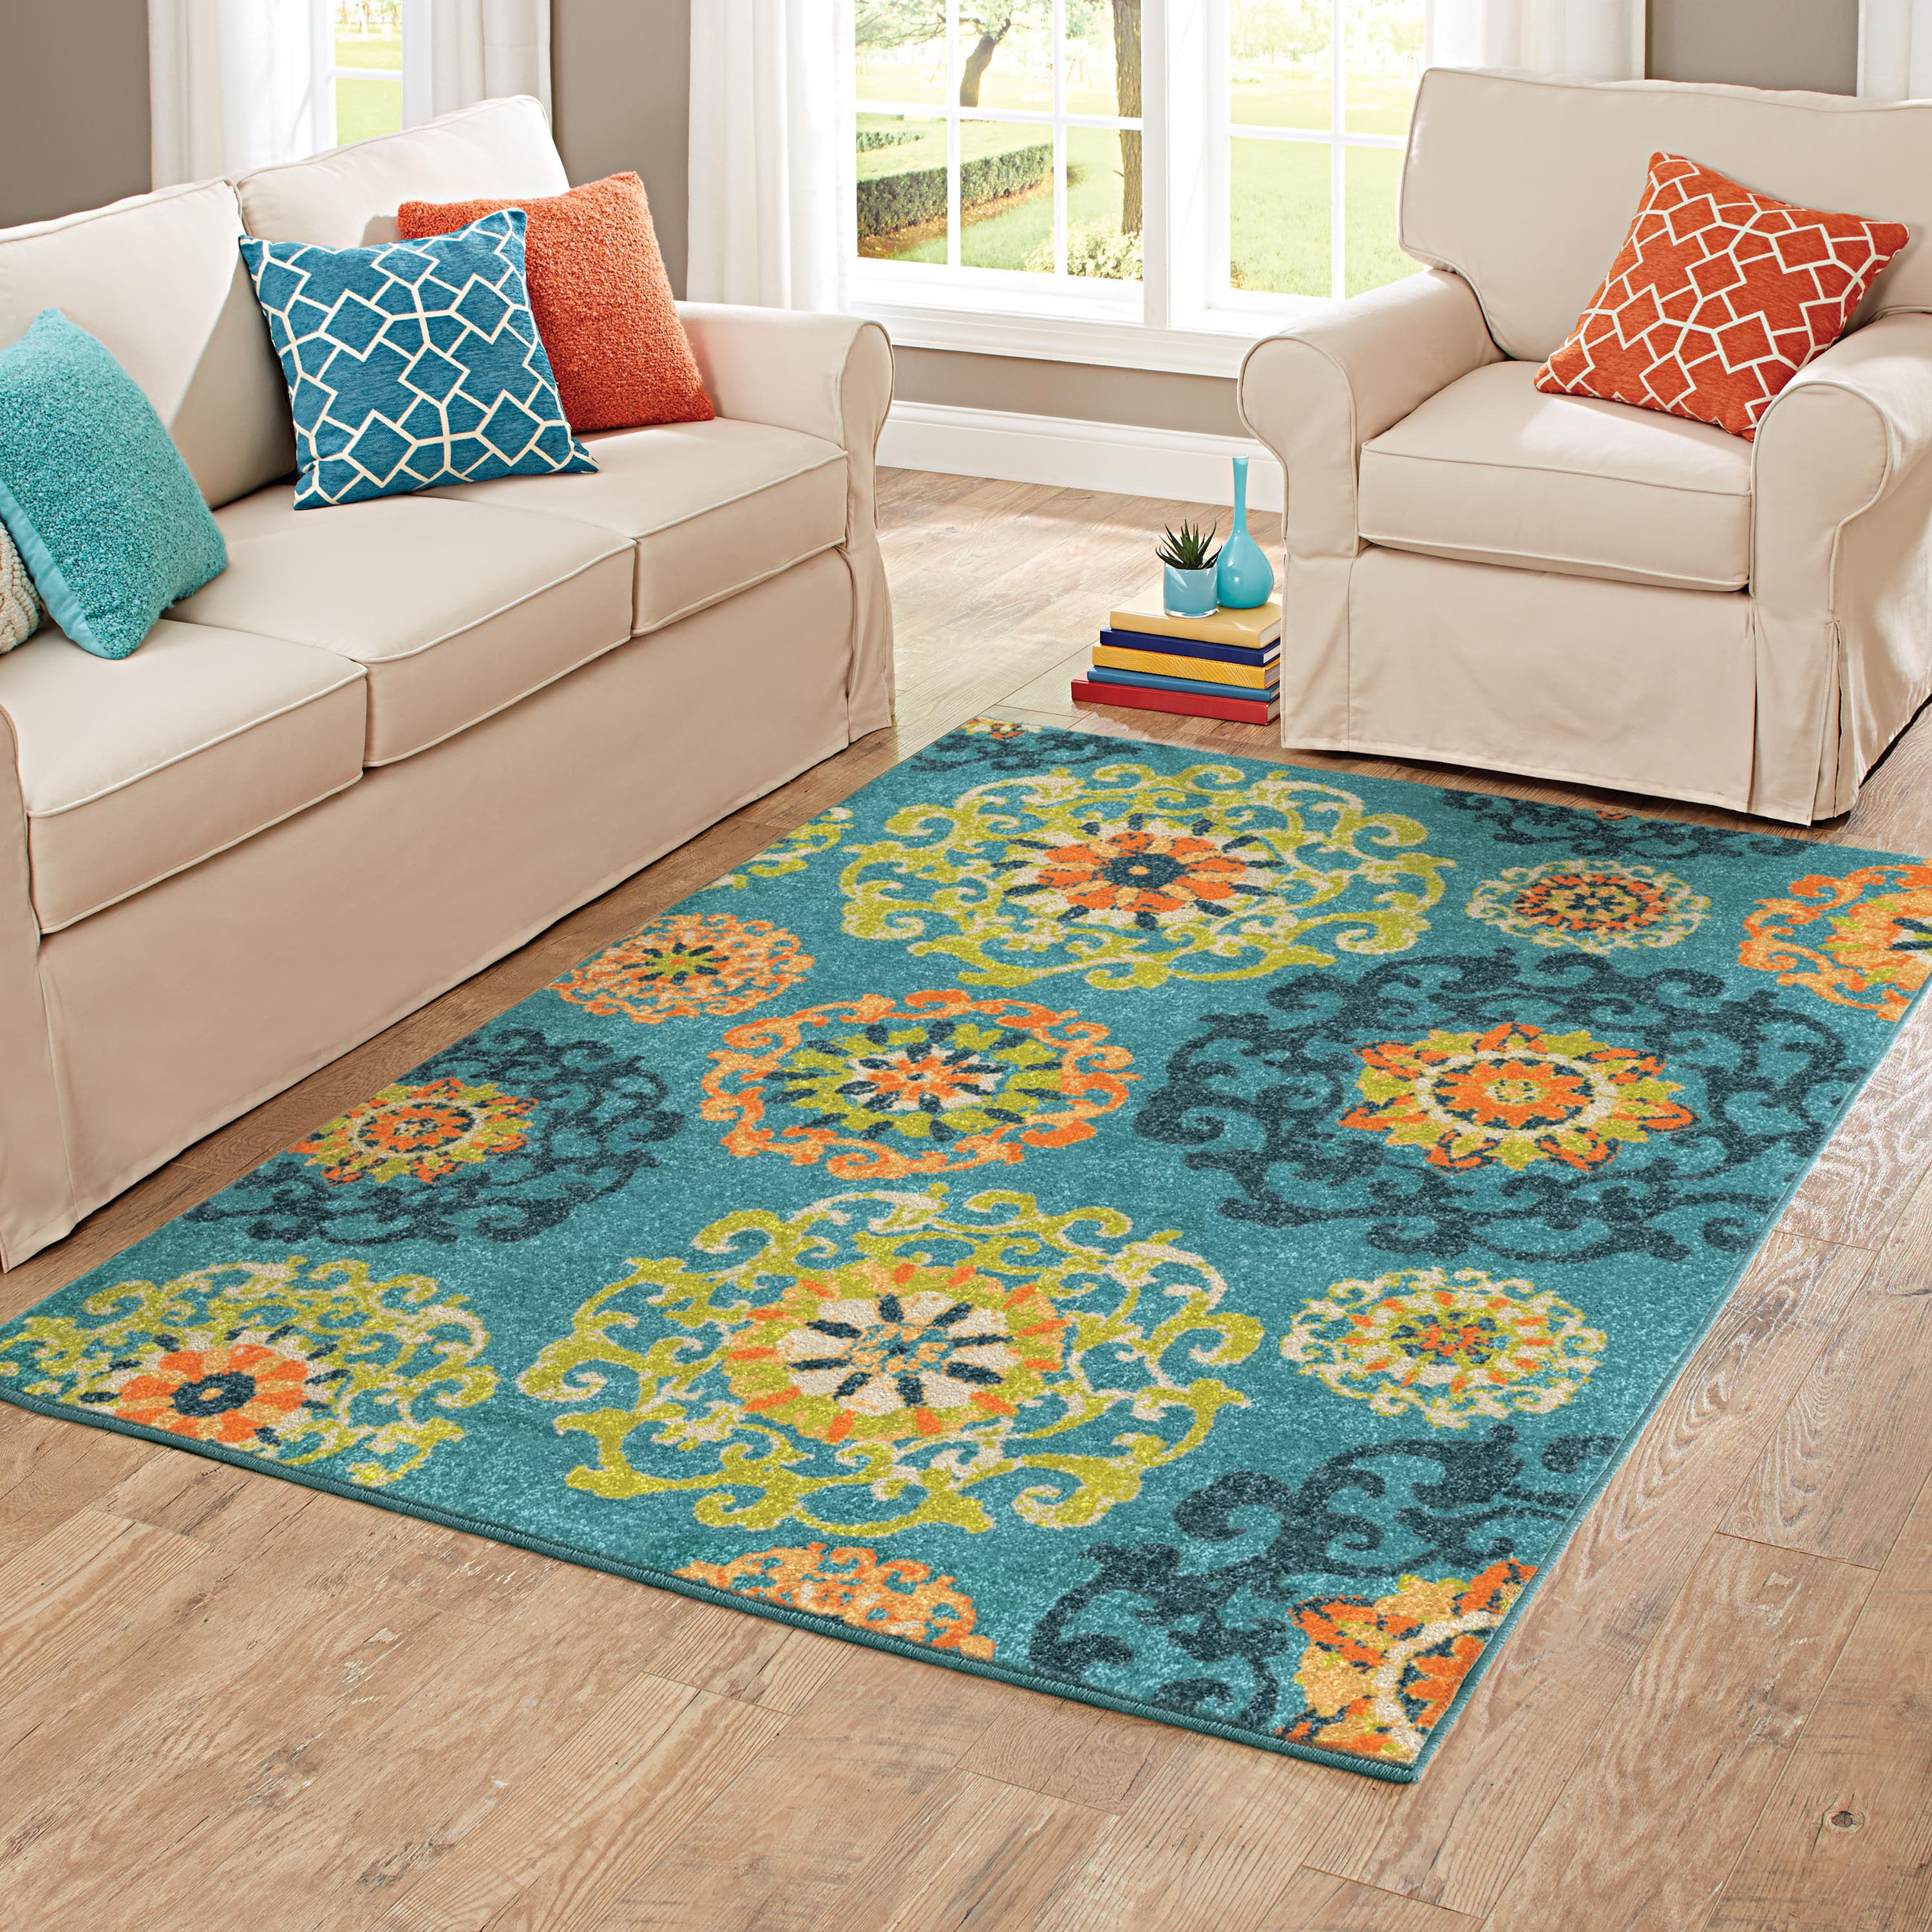 Better Homes and Gardens Suzani Area Rug or Runner